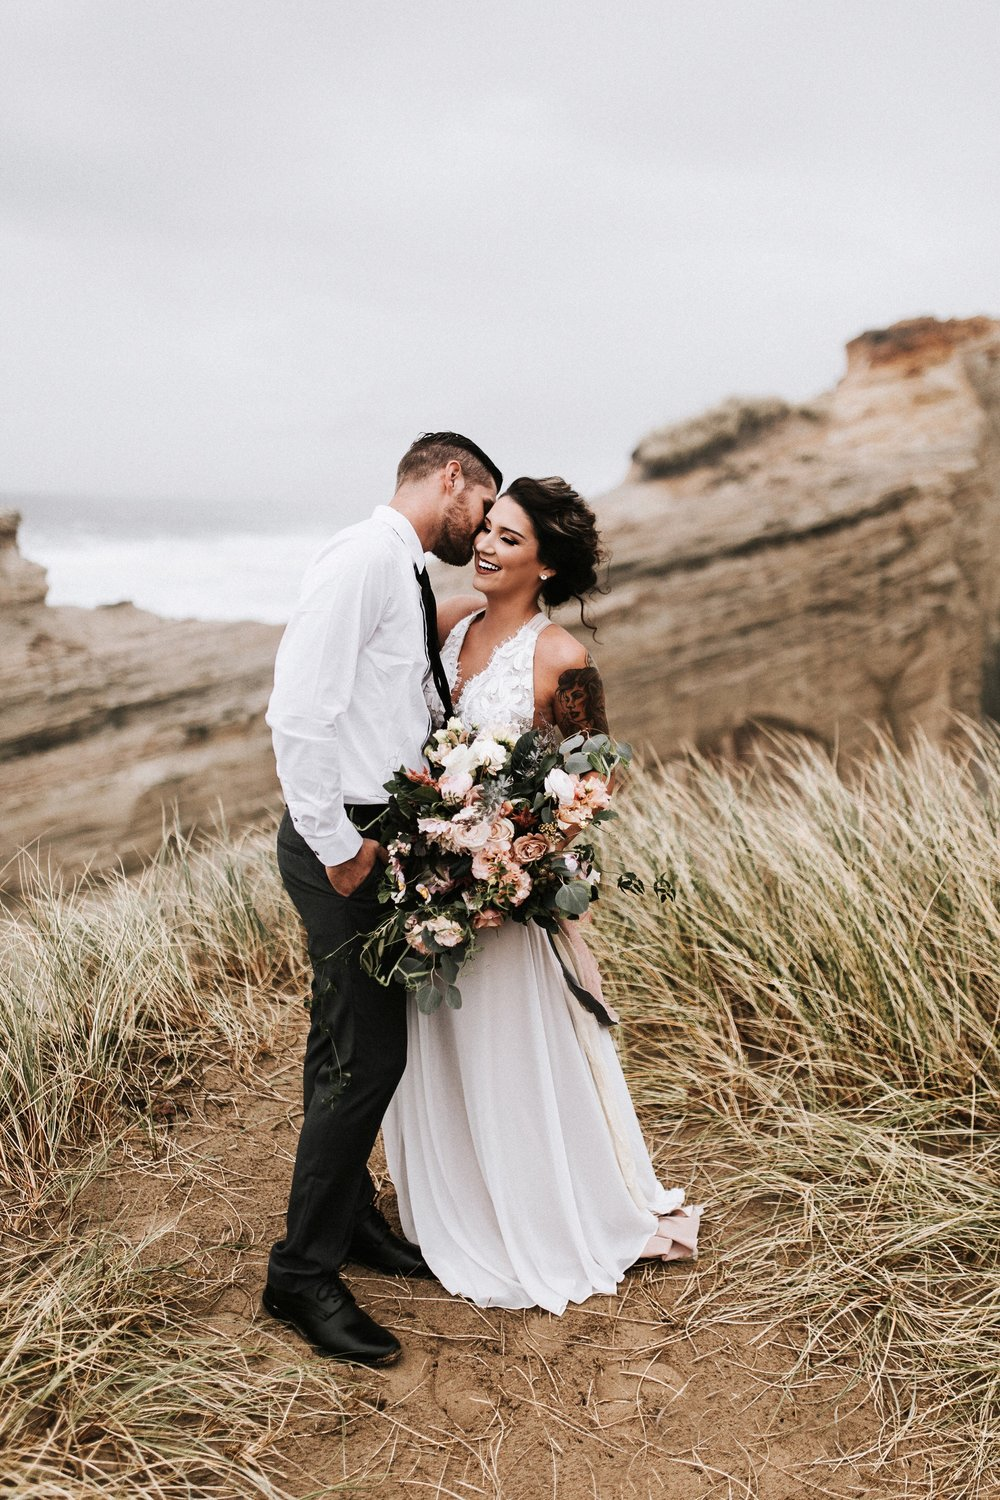 newlyweds on the beach with flowers